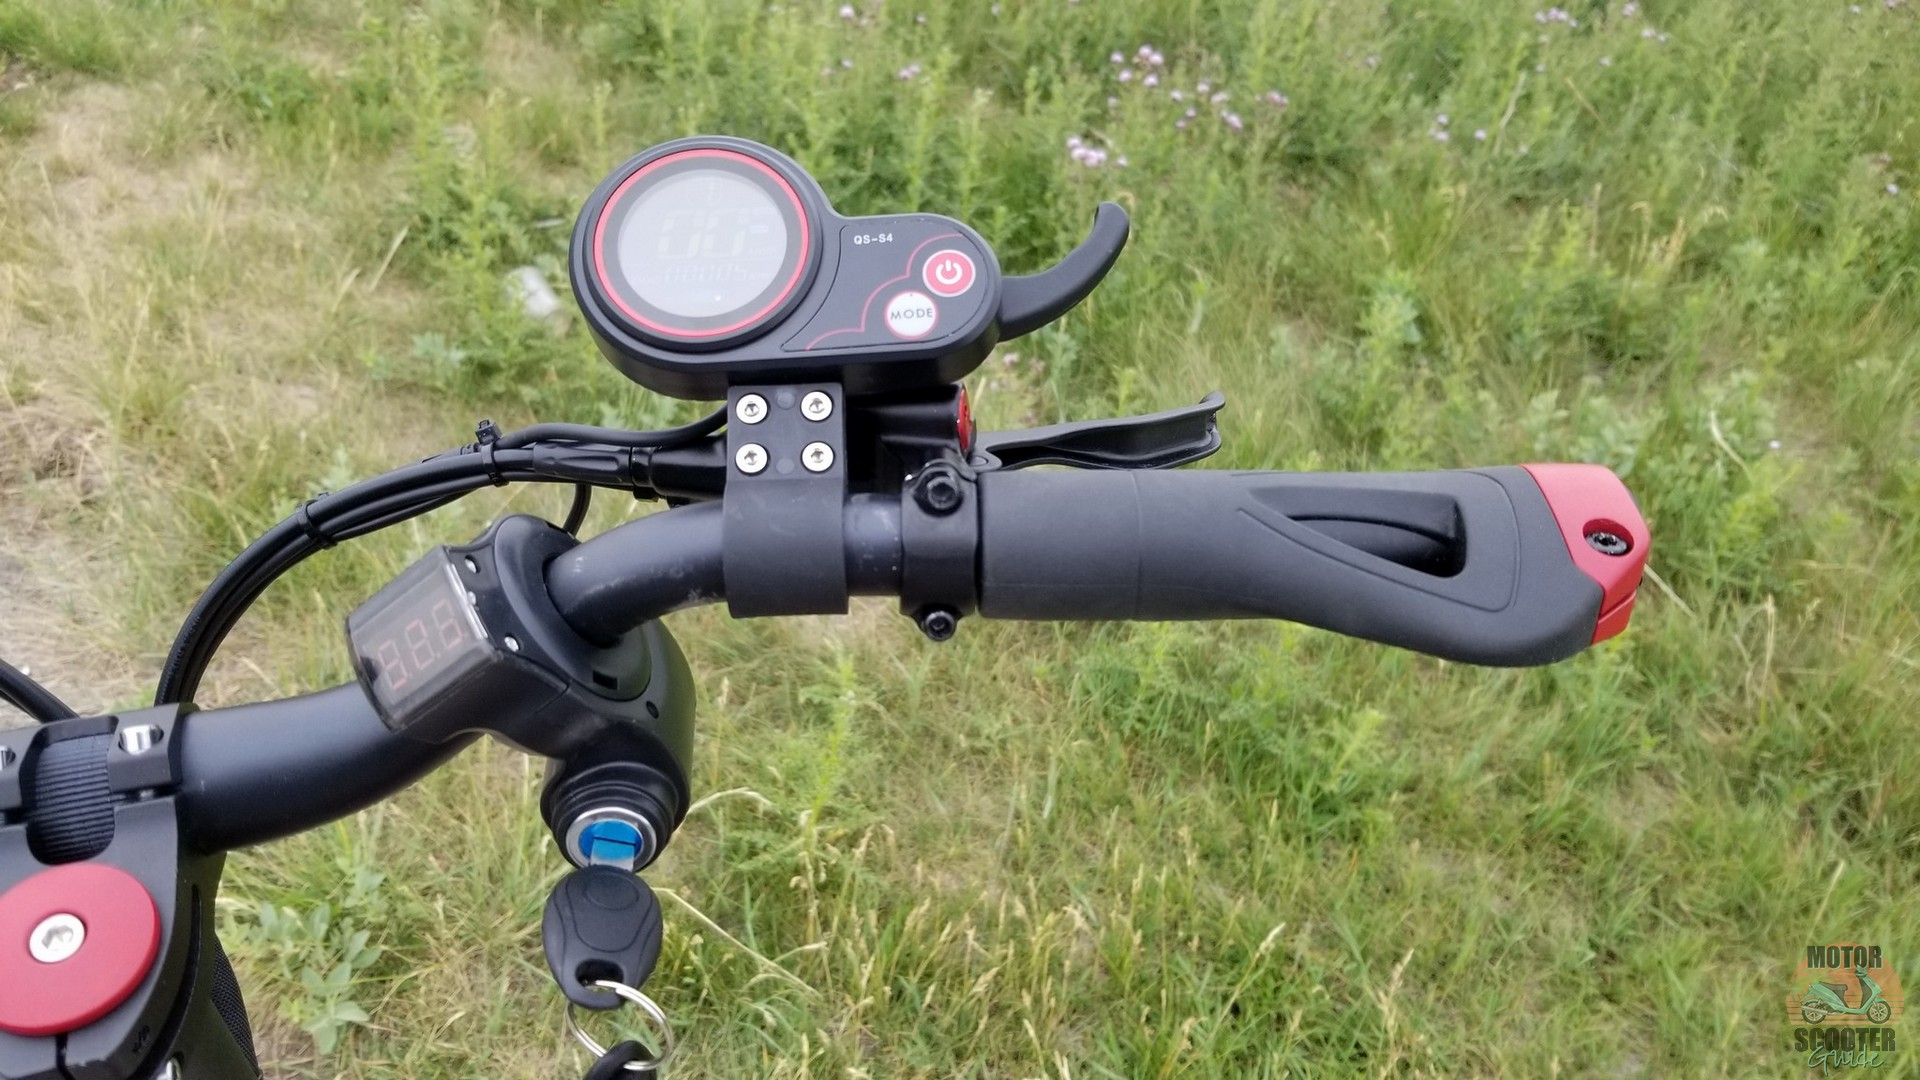 Right side of the handlebar showing limited space for both throttle and right-hand brake